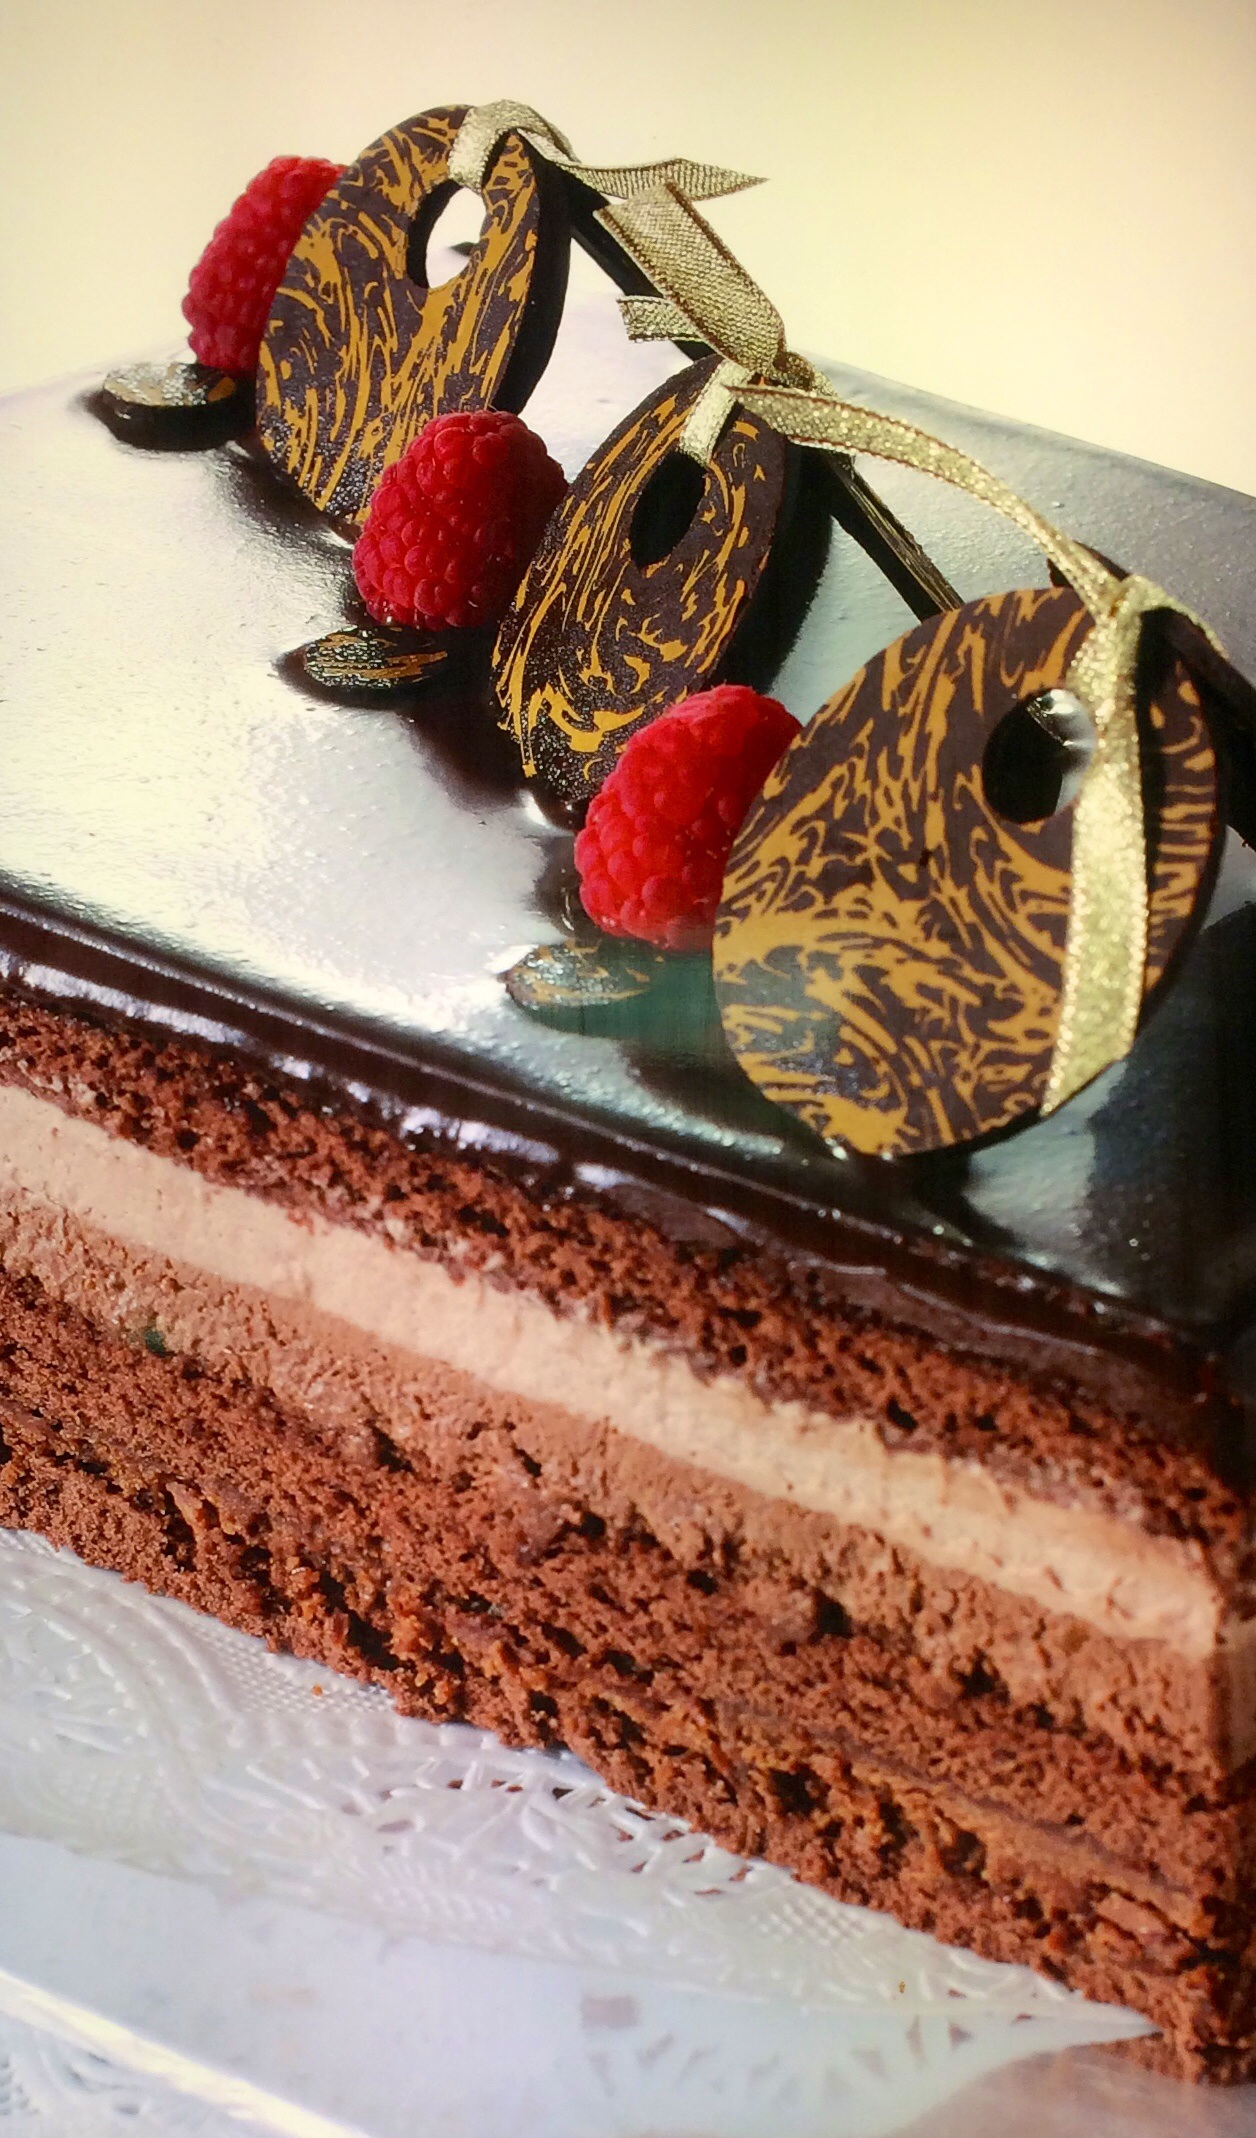 Best Dark Chocolate Cake Singapore